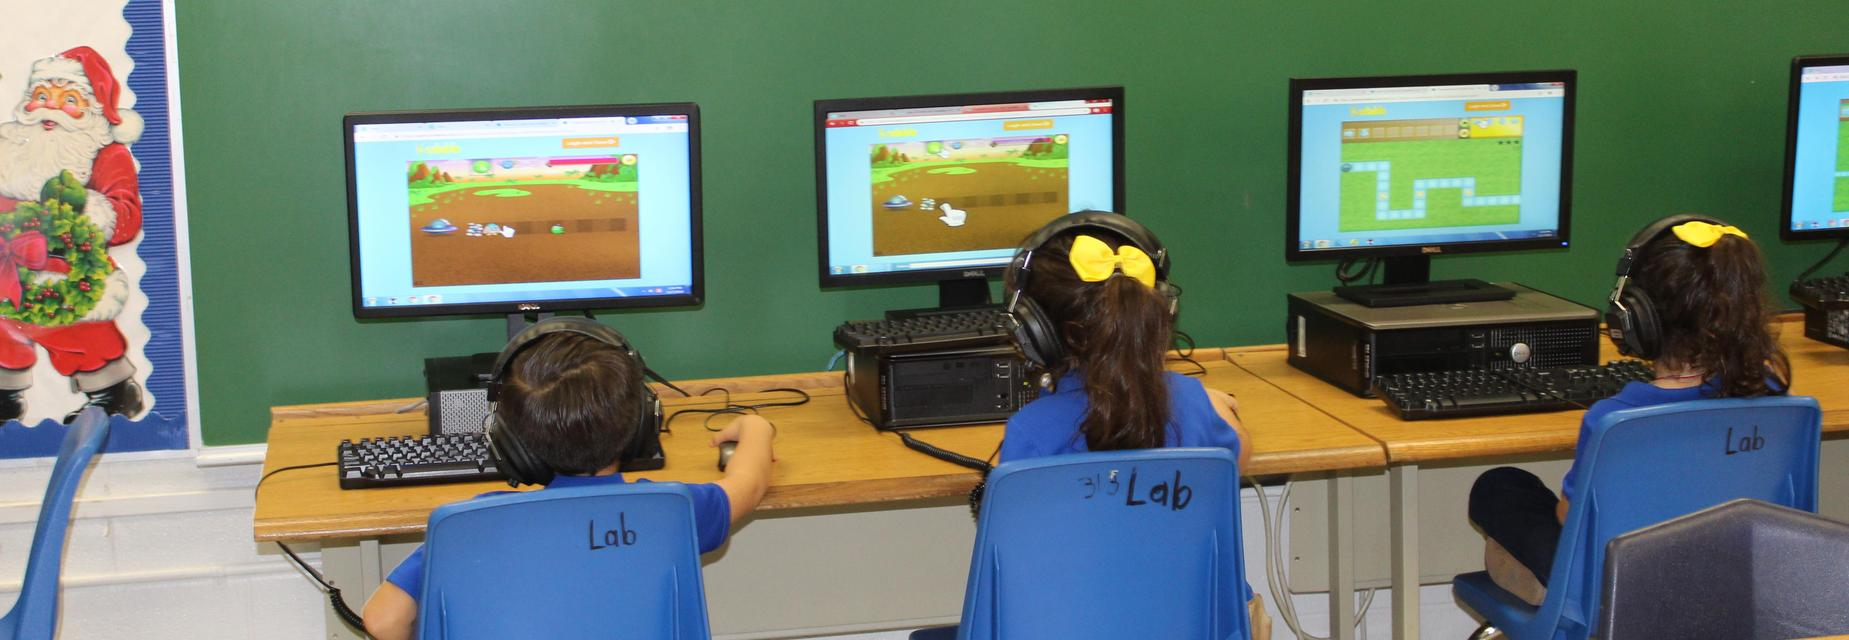 students working in the computer lab